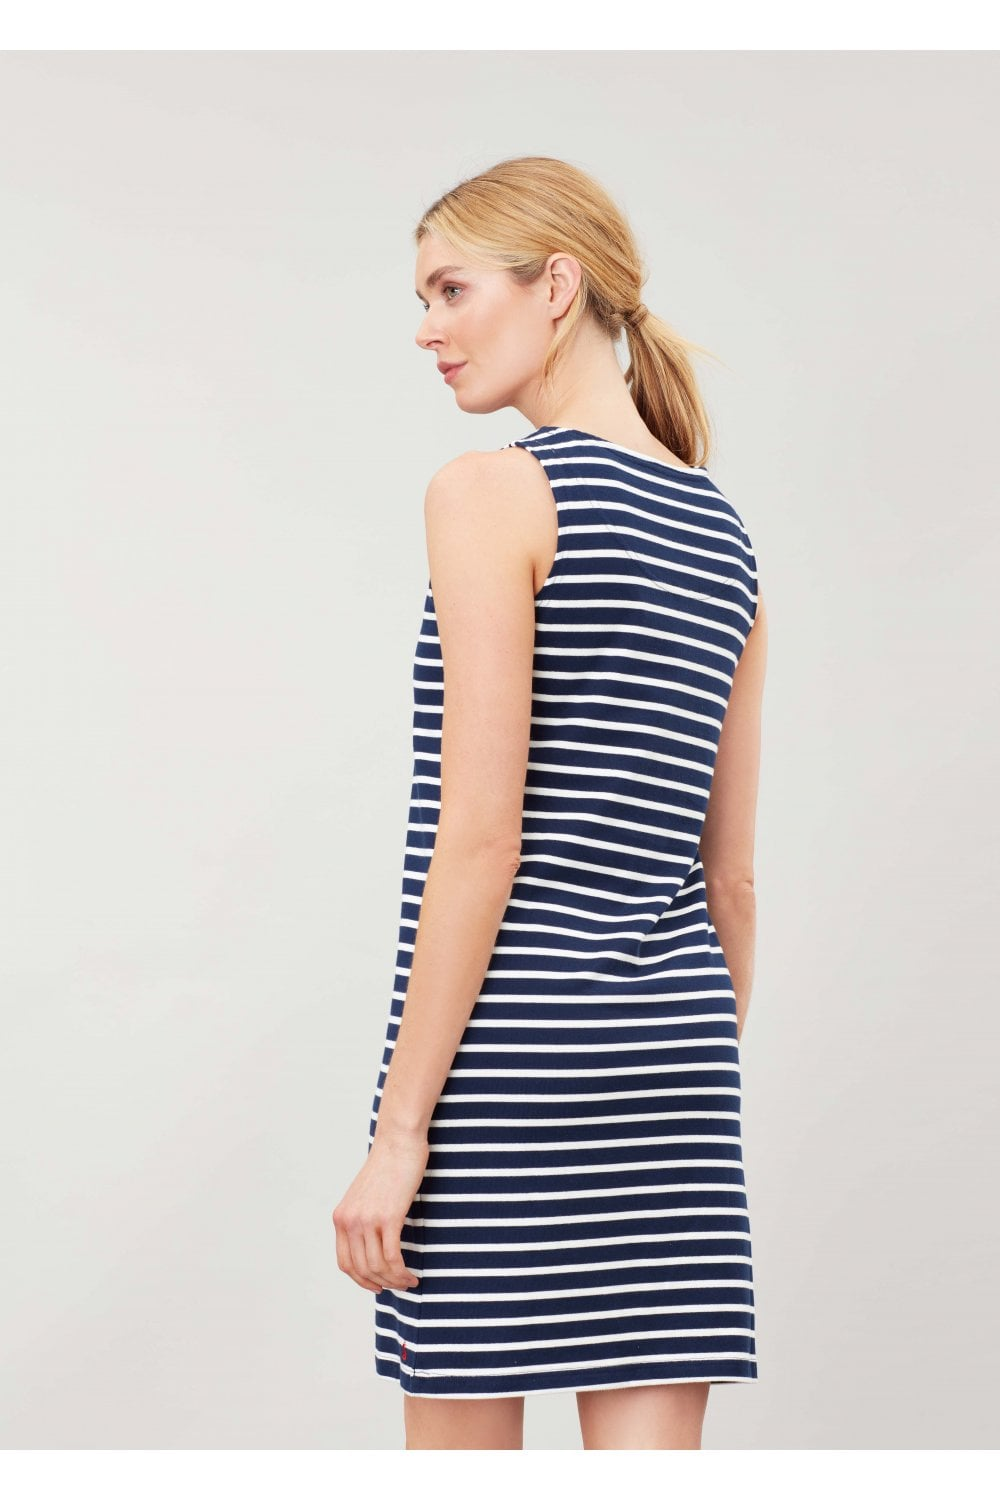 Joules Riva Sleeveless Dress for Ladies in Navy Cream Stripe